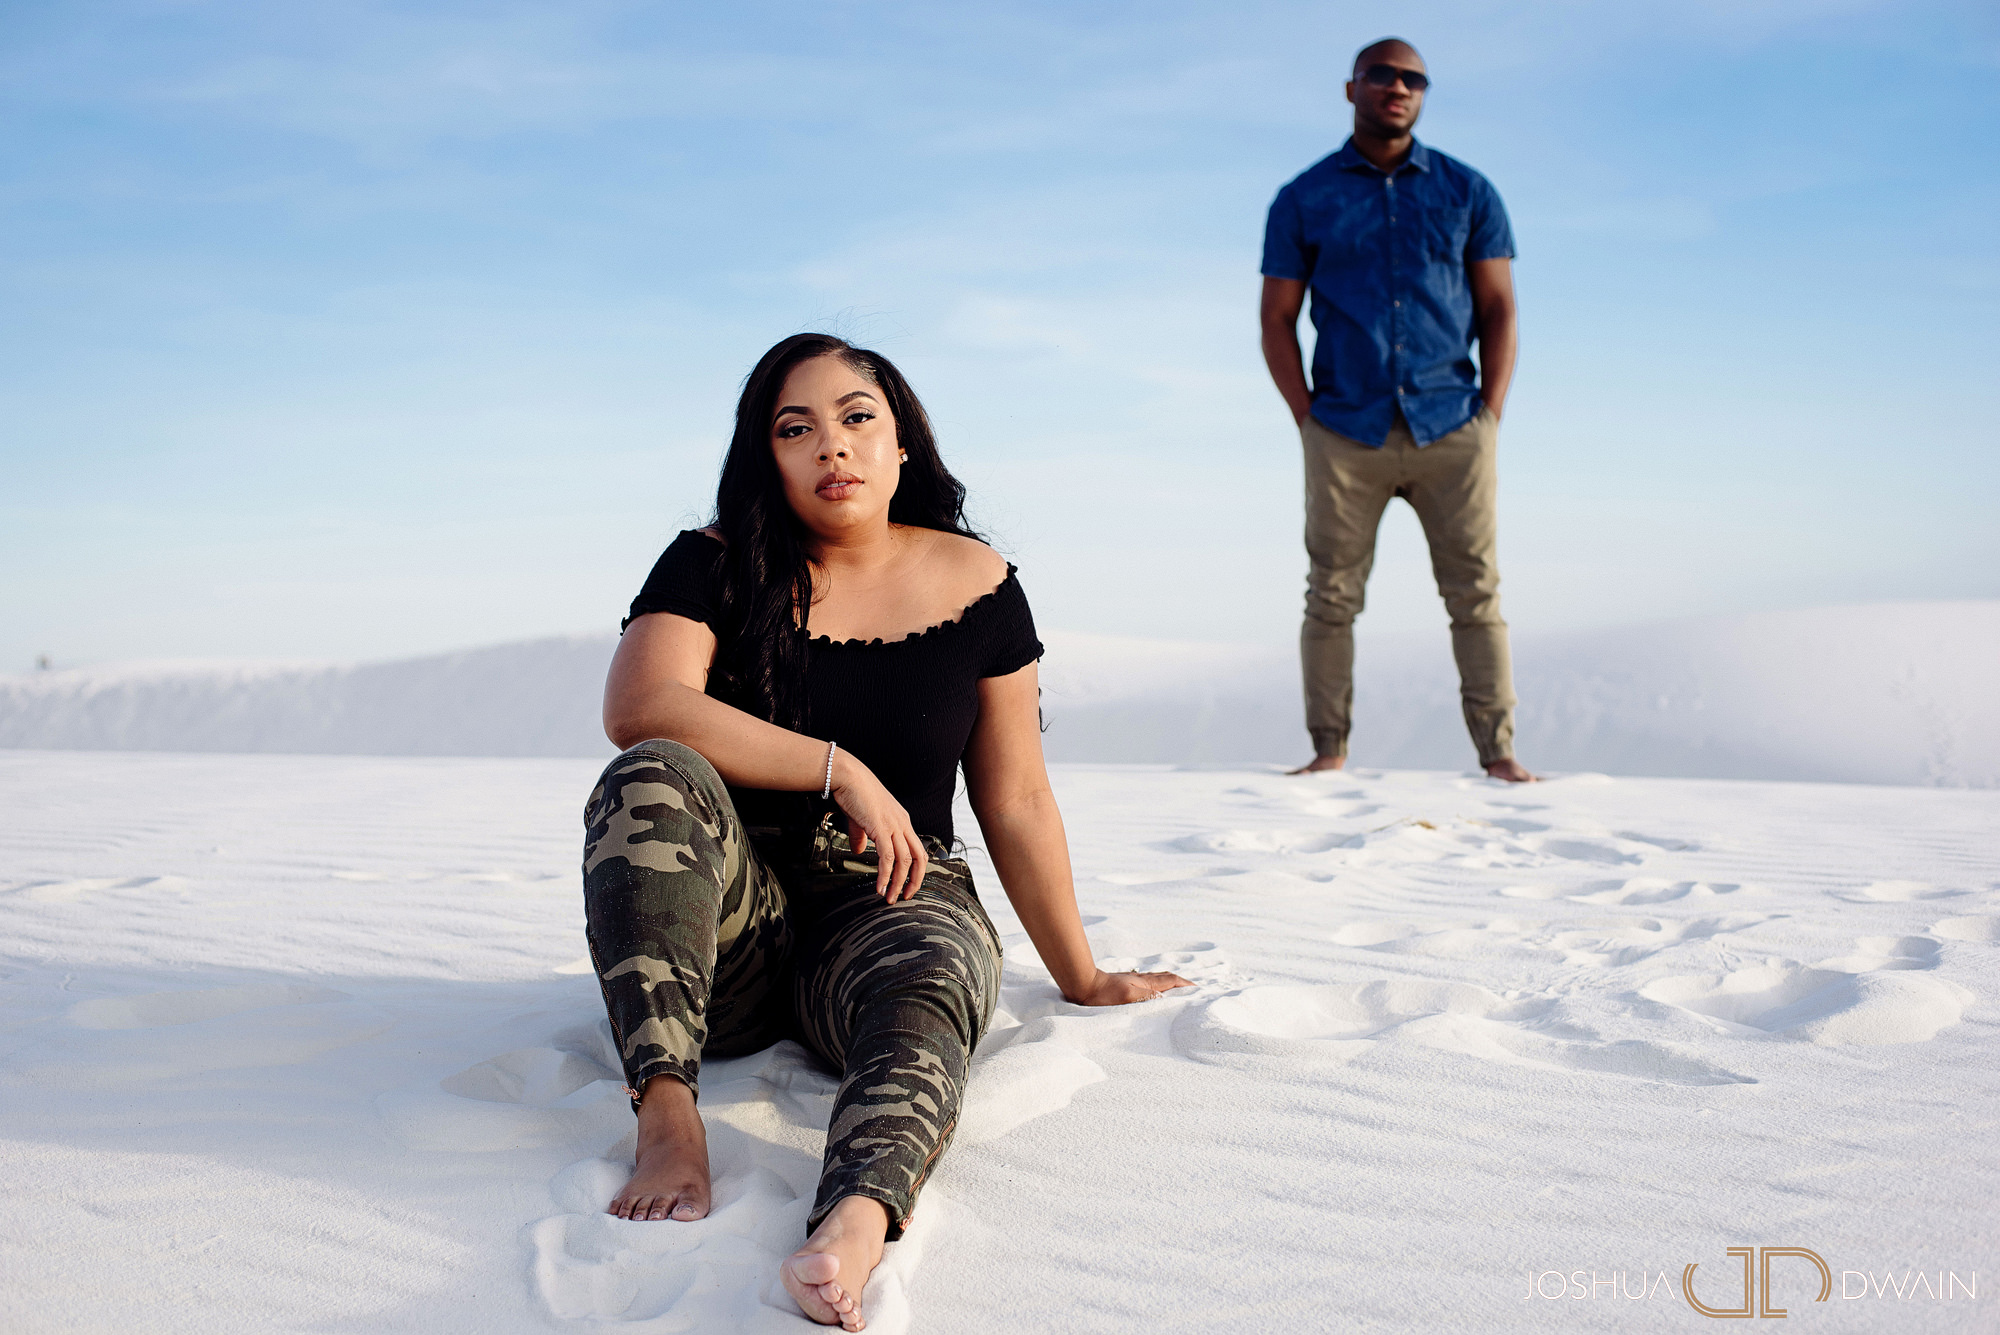 brianna-william-18-white-sands-monument-national-park-new-mexico-engagement-photographer-joshua-dwain-